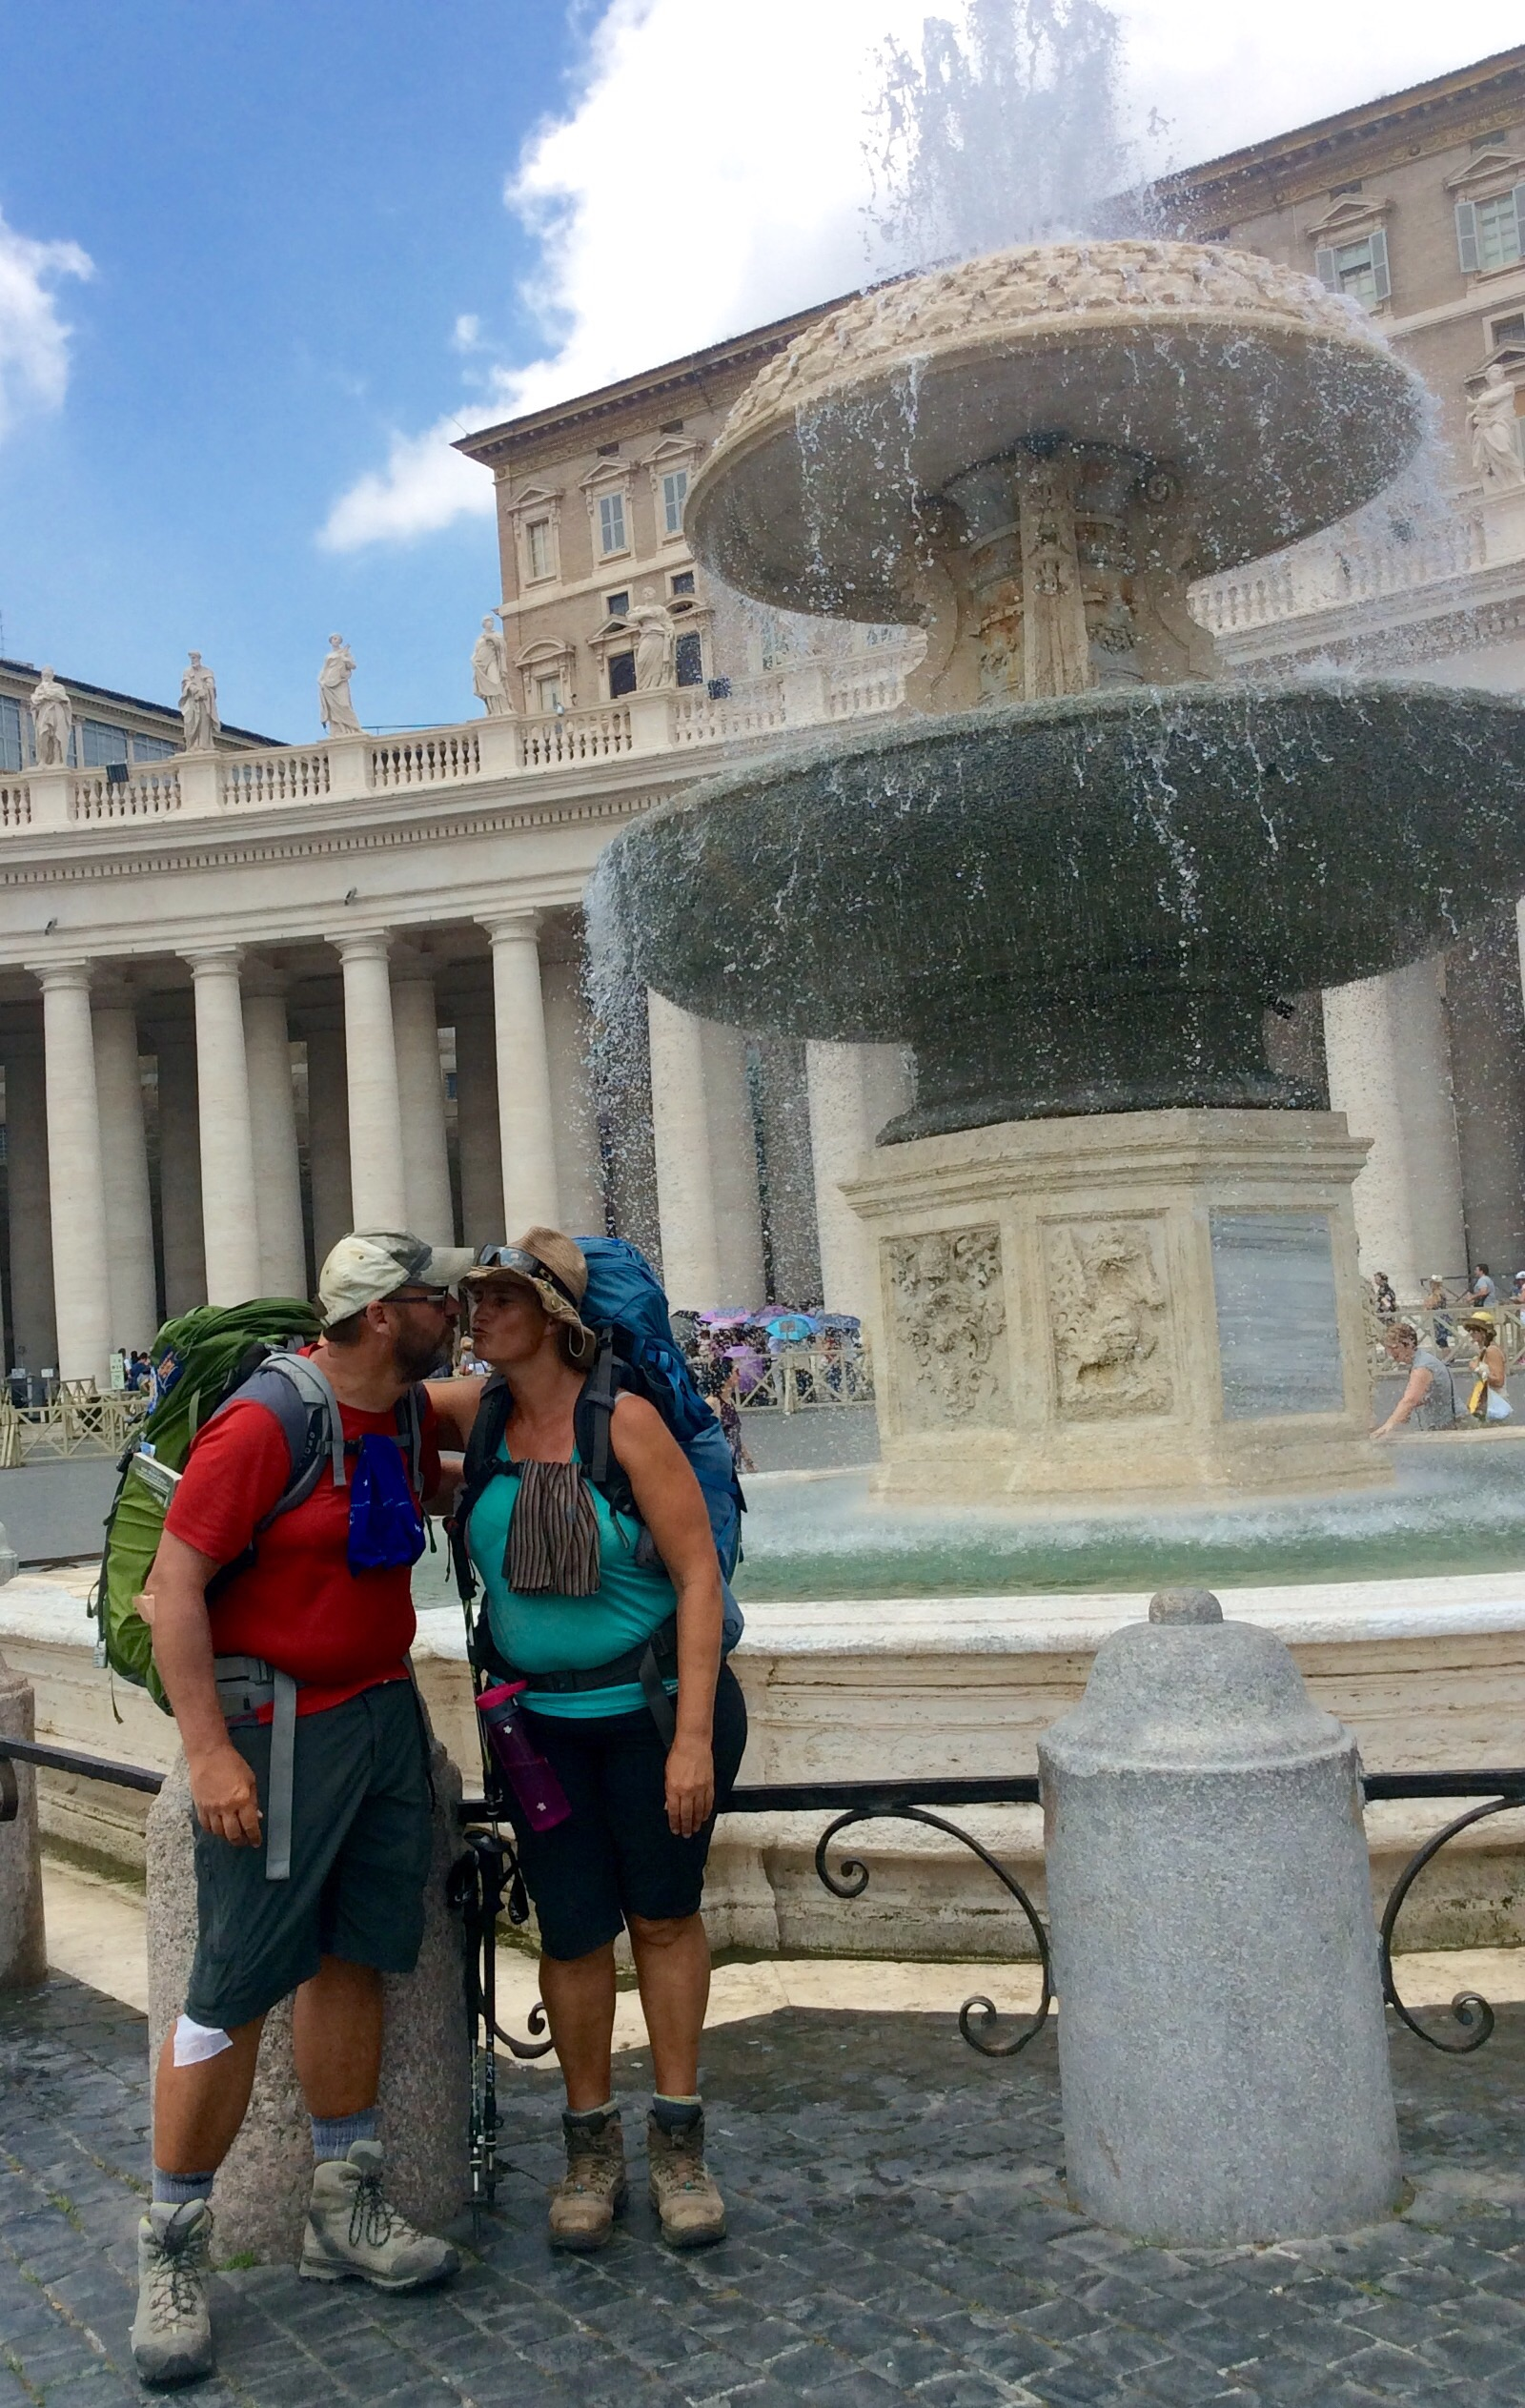 Snap Shots of the Via Francigena